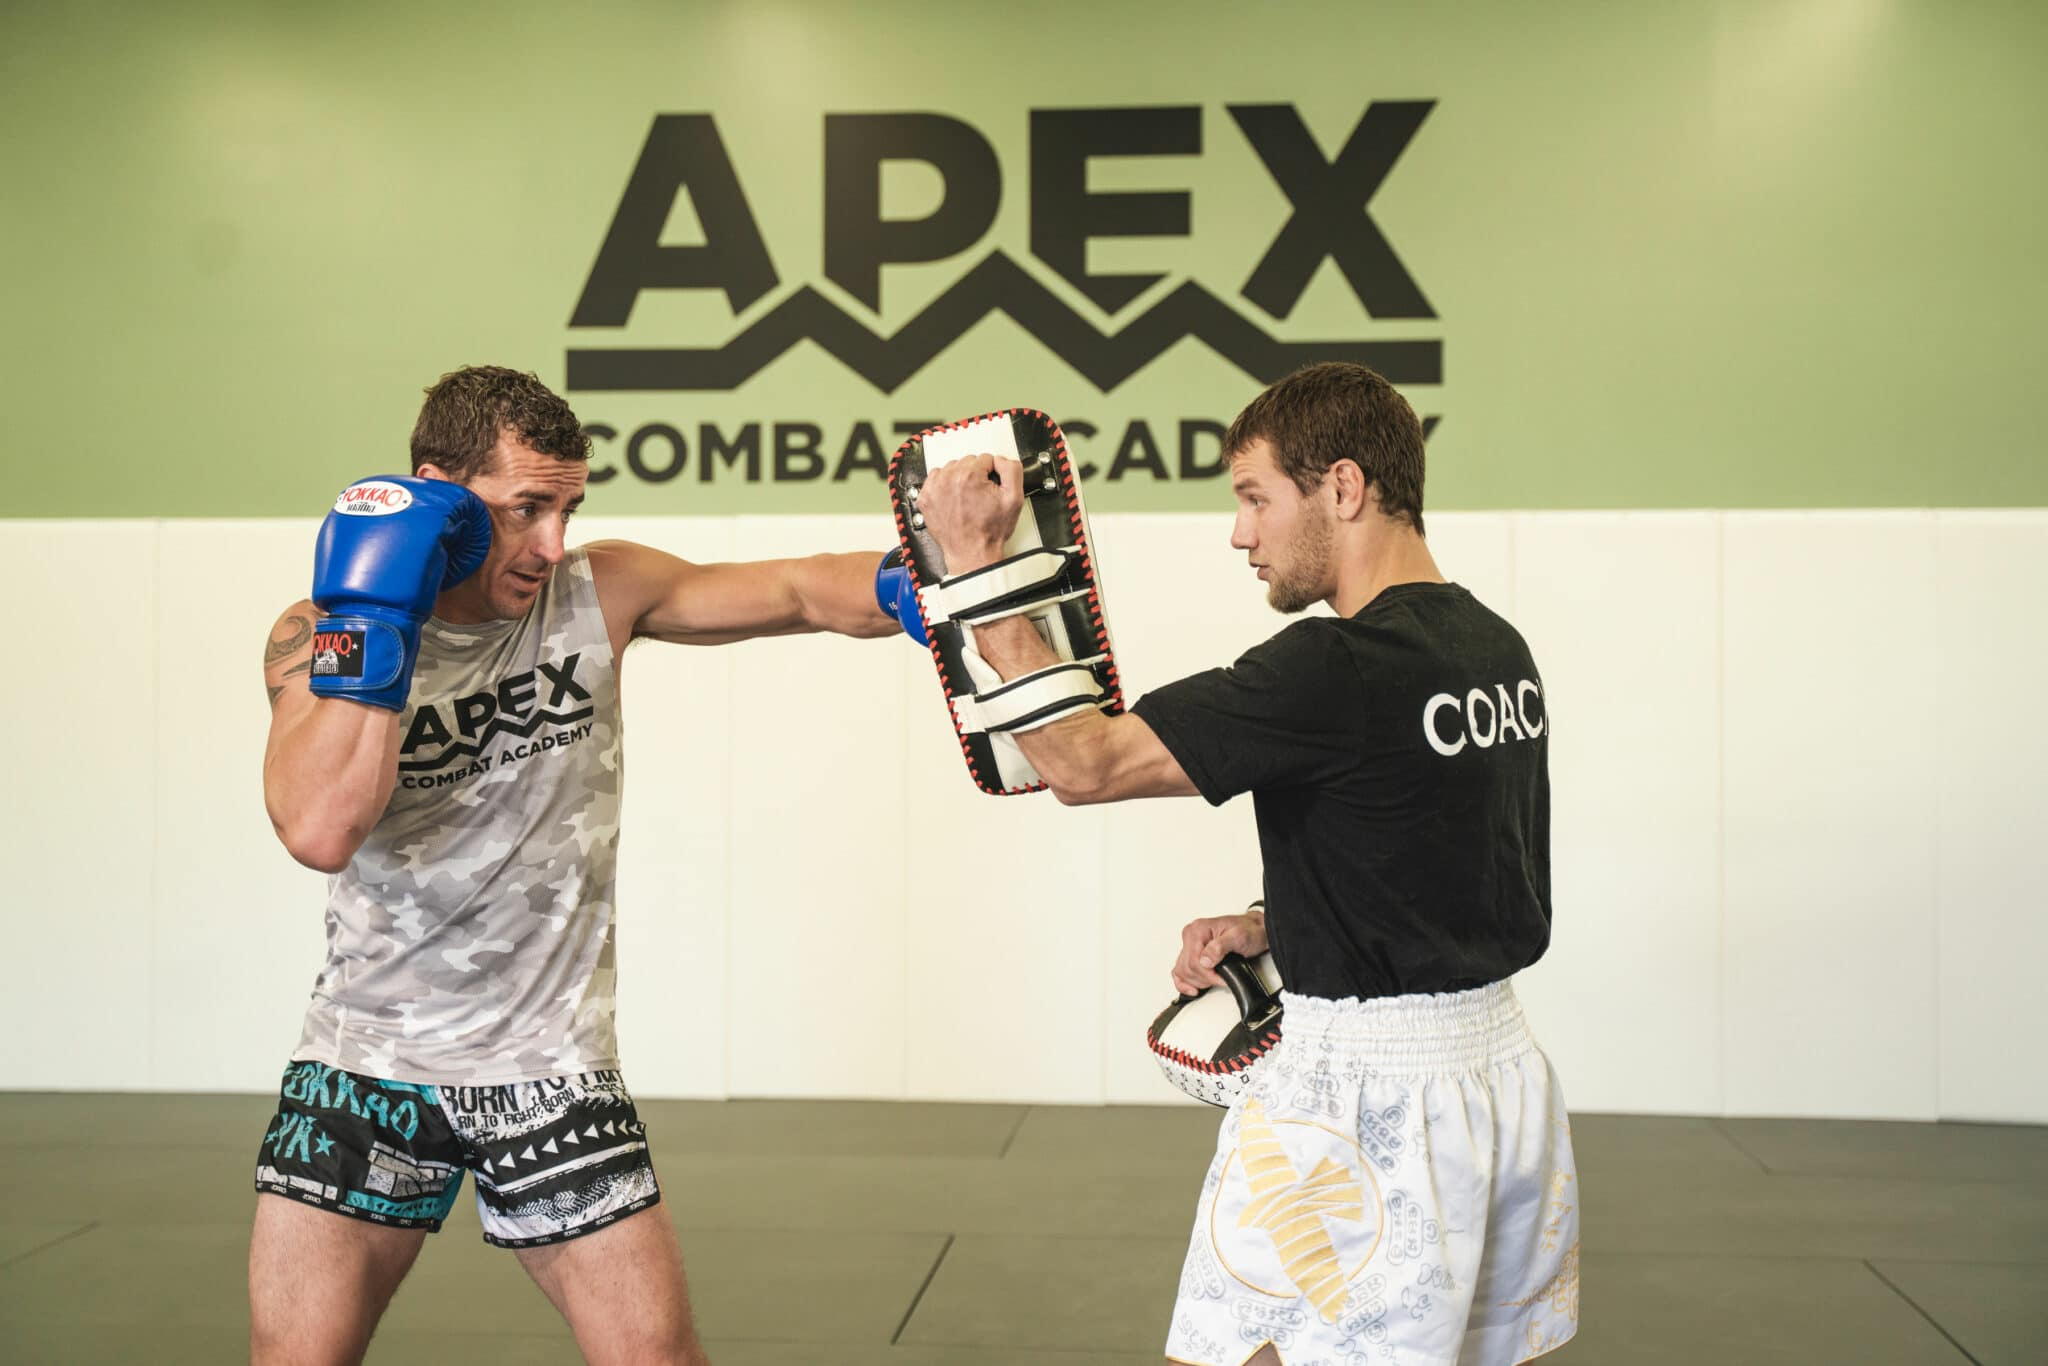 Apex Combat Academy MMA Classes For Beginners!